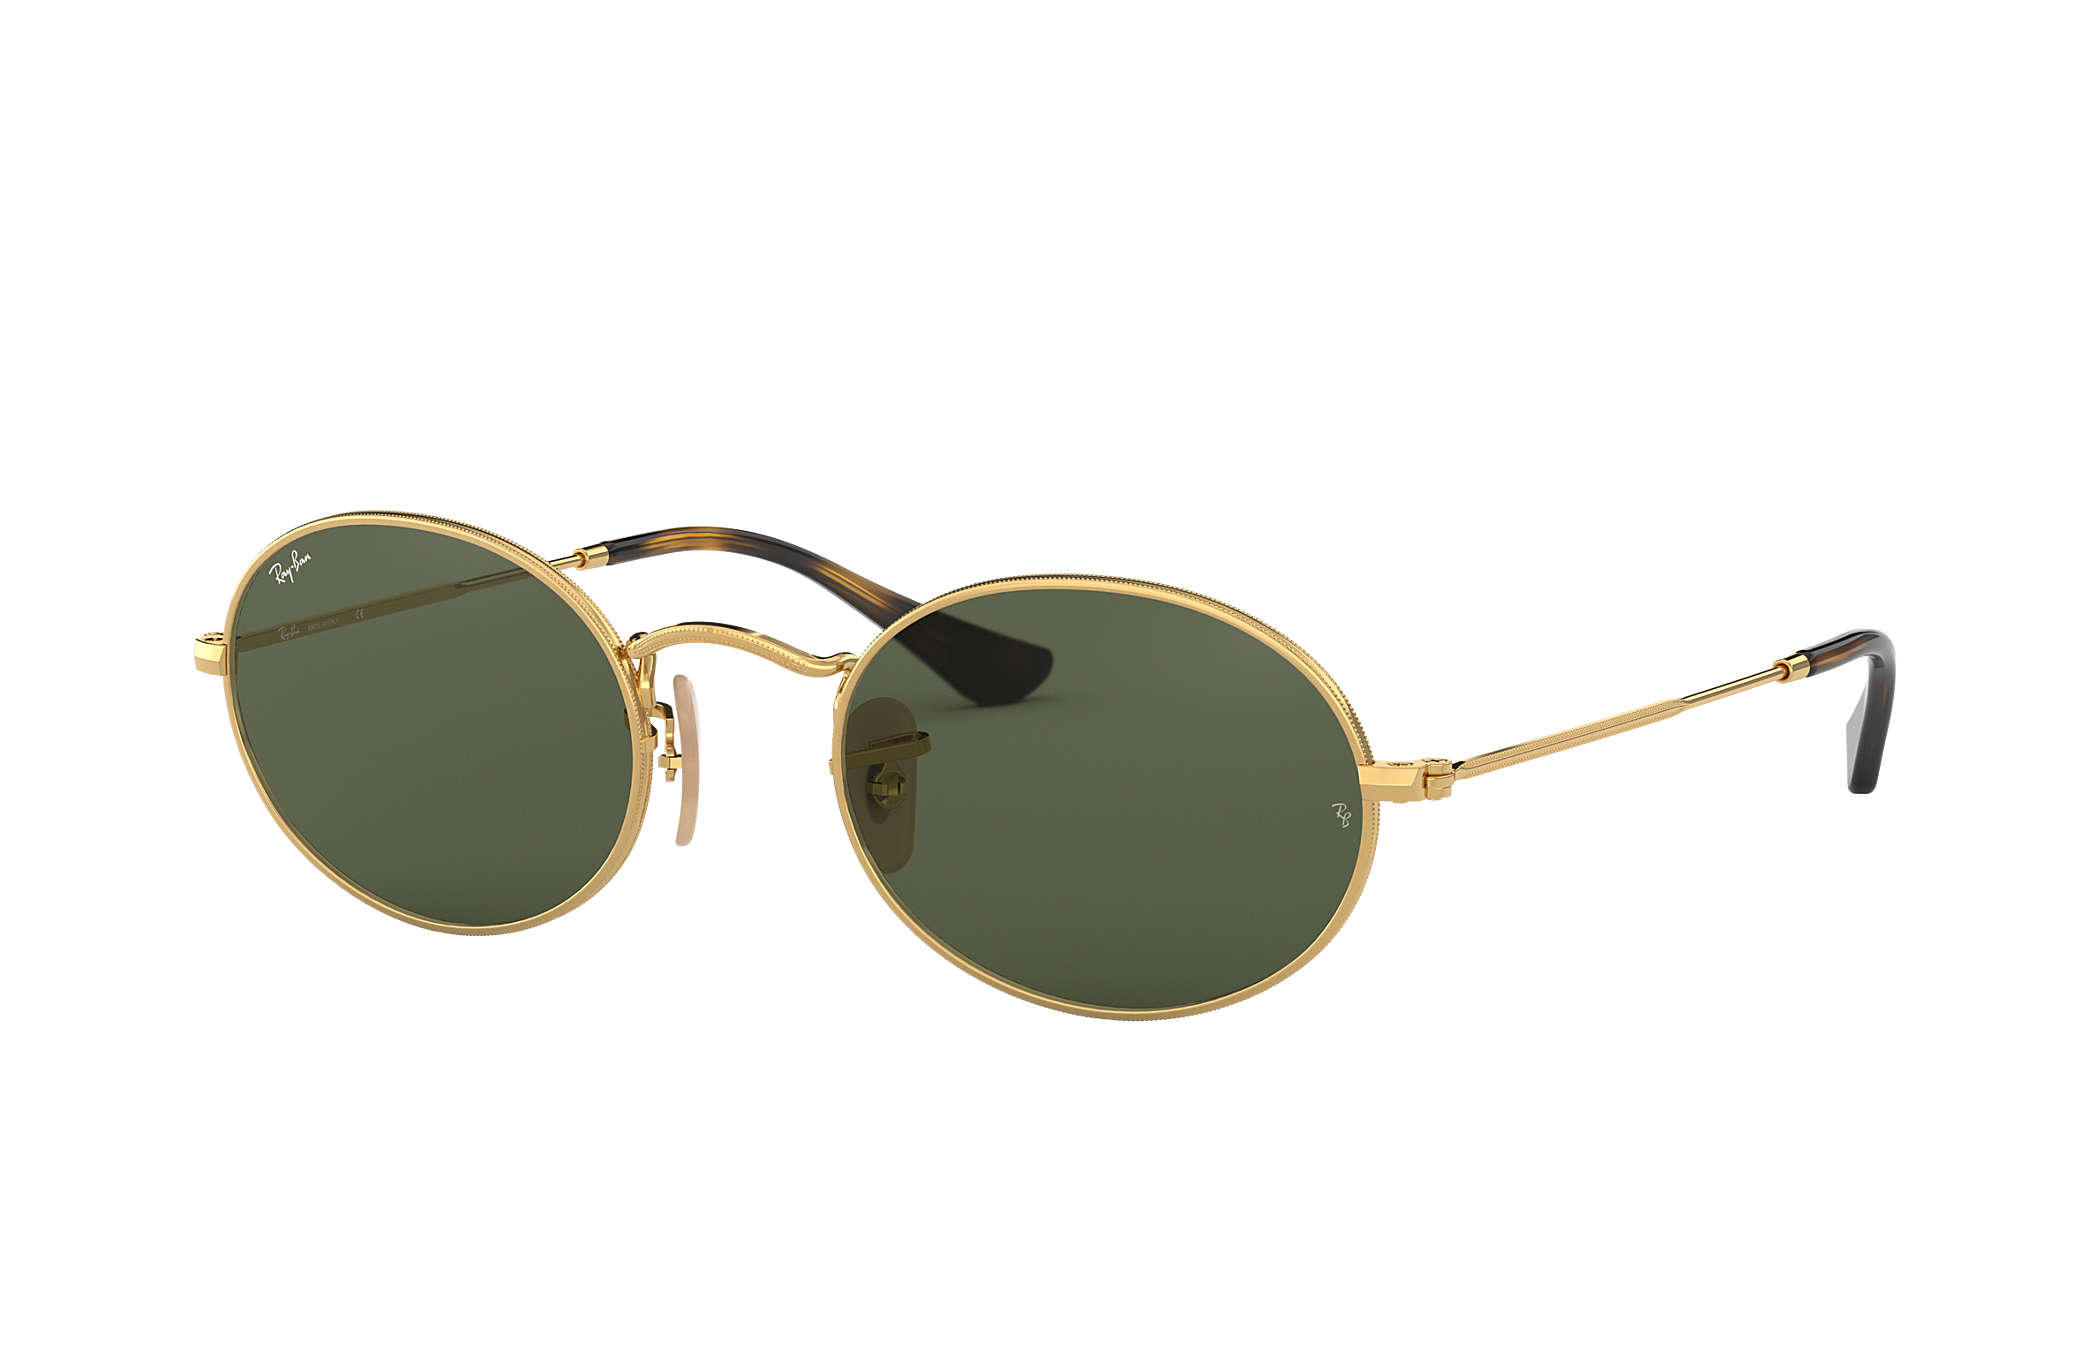 6b4be1850a1f76 Ray-Ban Oval Flat Lenses RB3547N Gold - Metal - Green Lenses ...